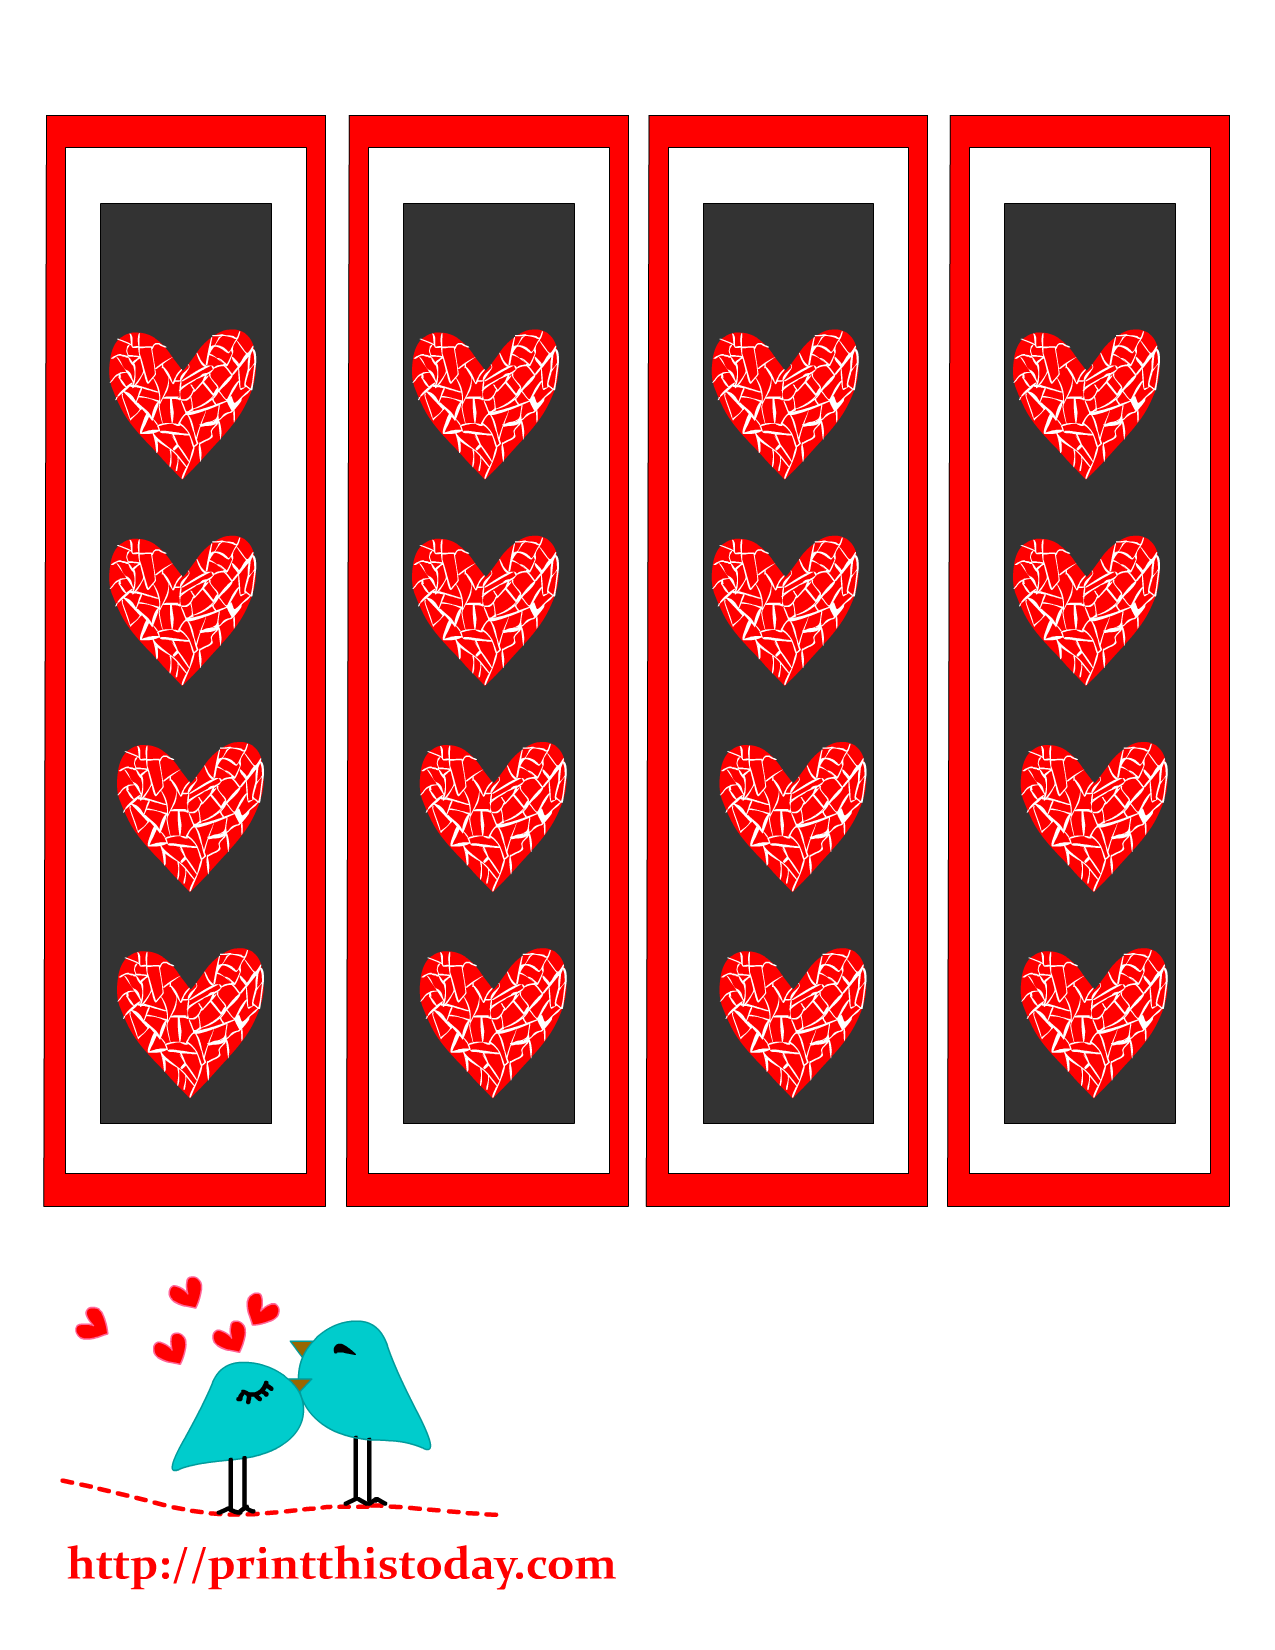 Free Printable Bookmarks with Hearts